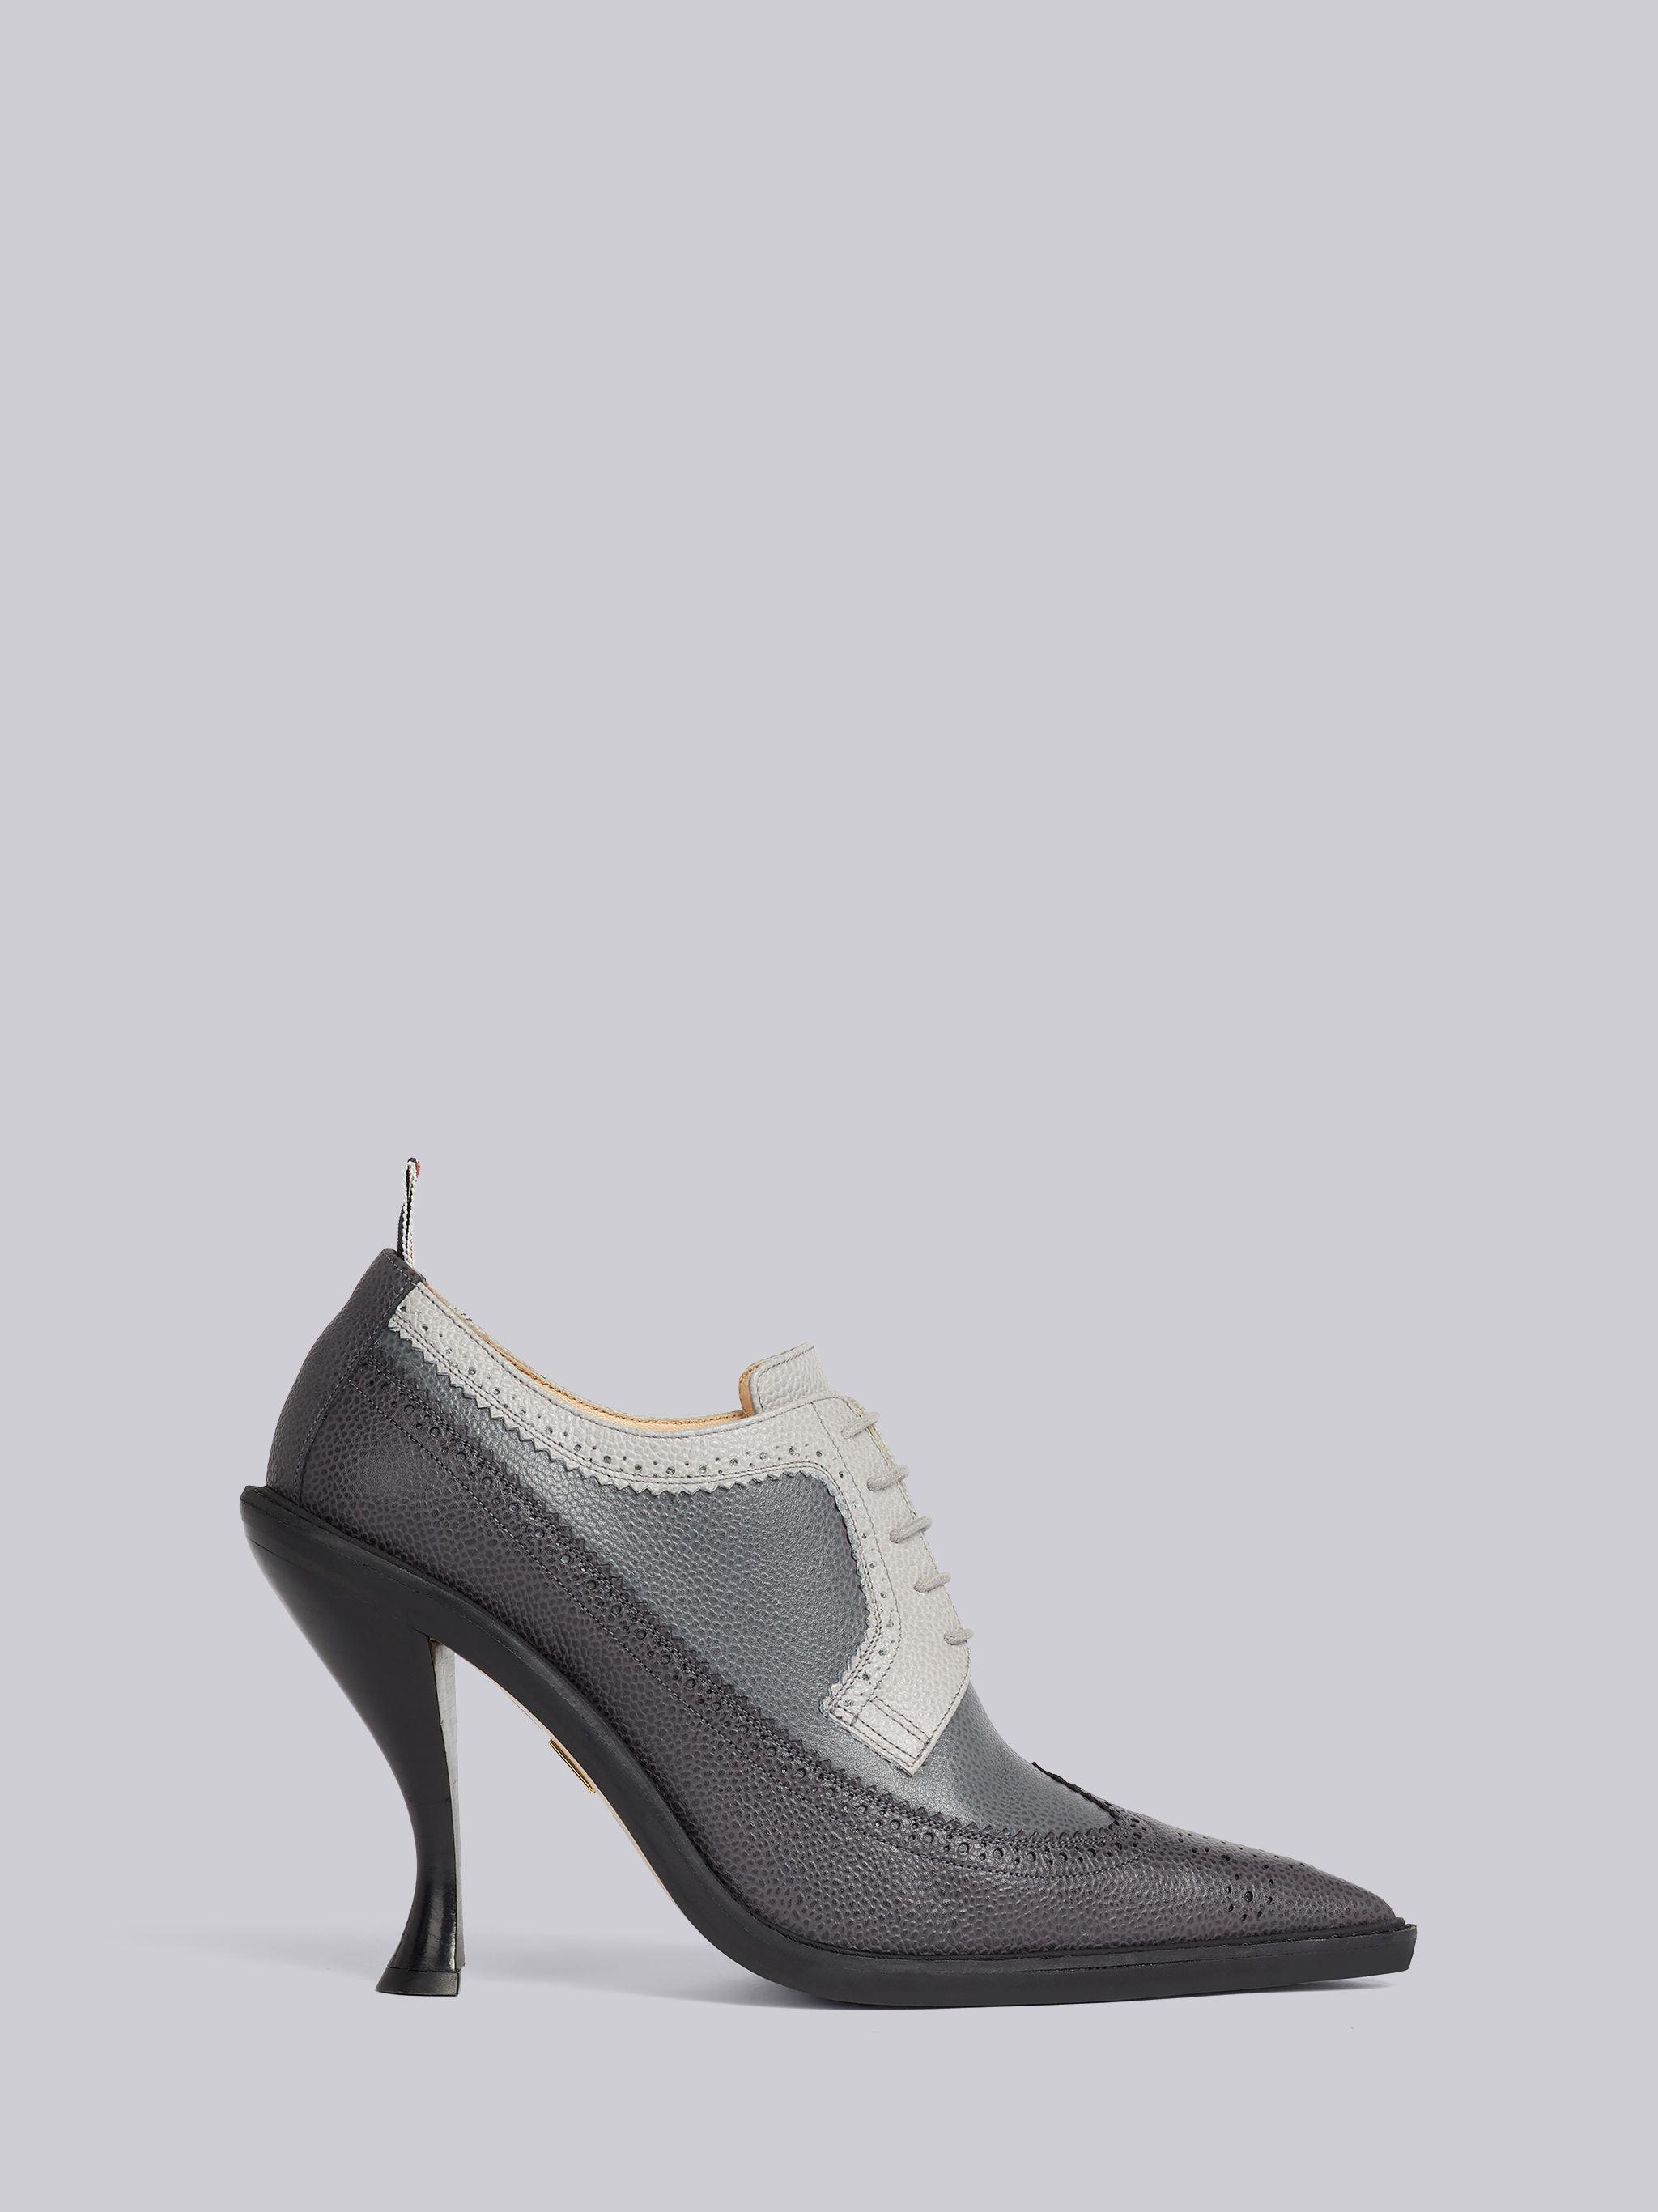 Charcoal Pebble Grain Leather 105mm Curved Heel Longwing Spectator Brogue